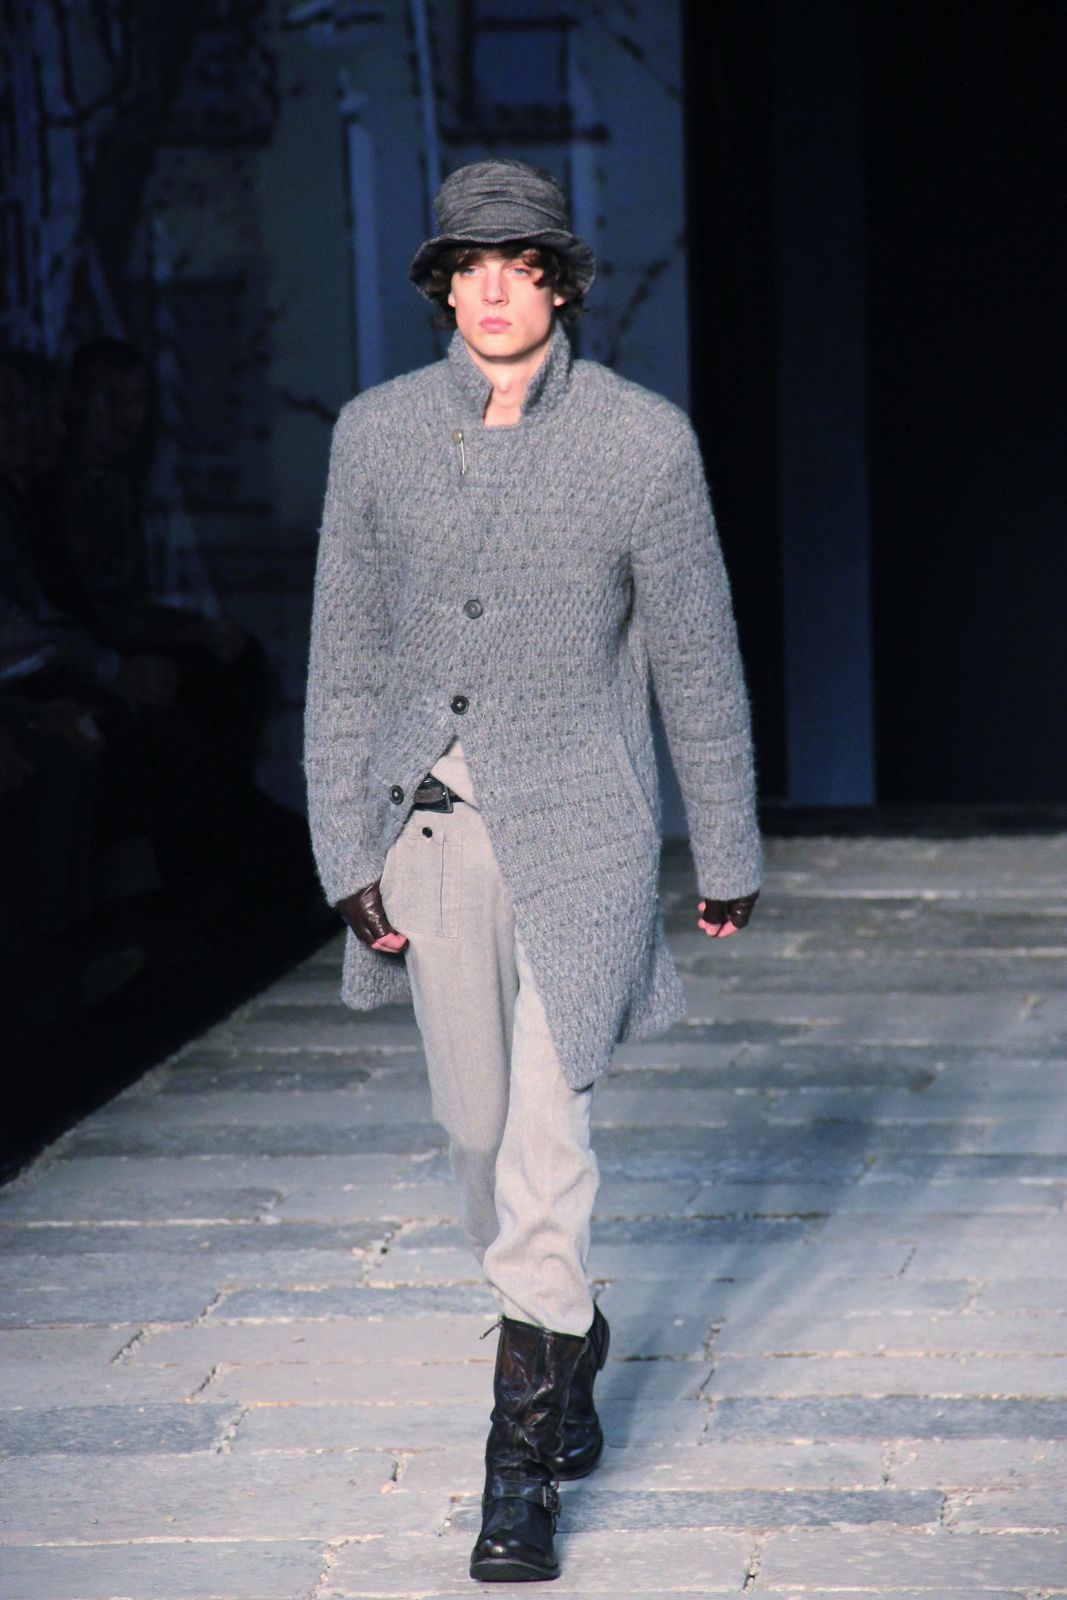 John Varvatos Fall Winter 2012 Men's Collection Milano Fashion Week